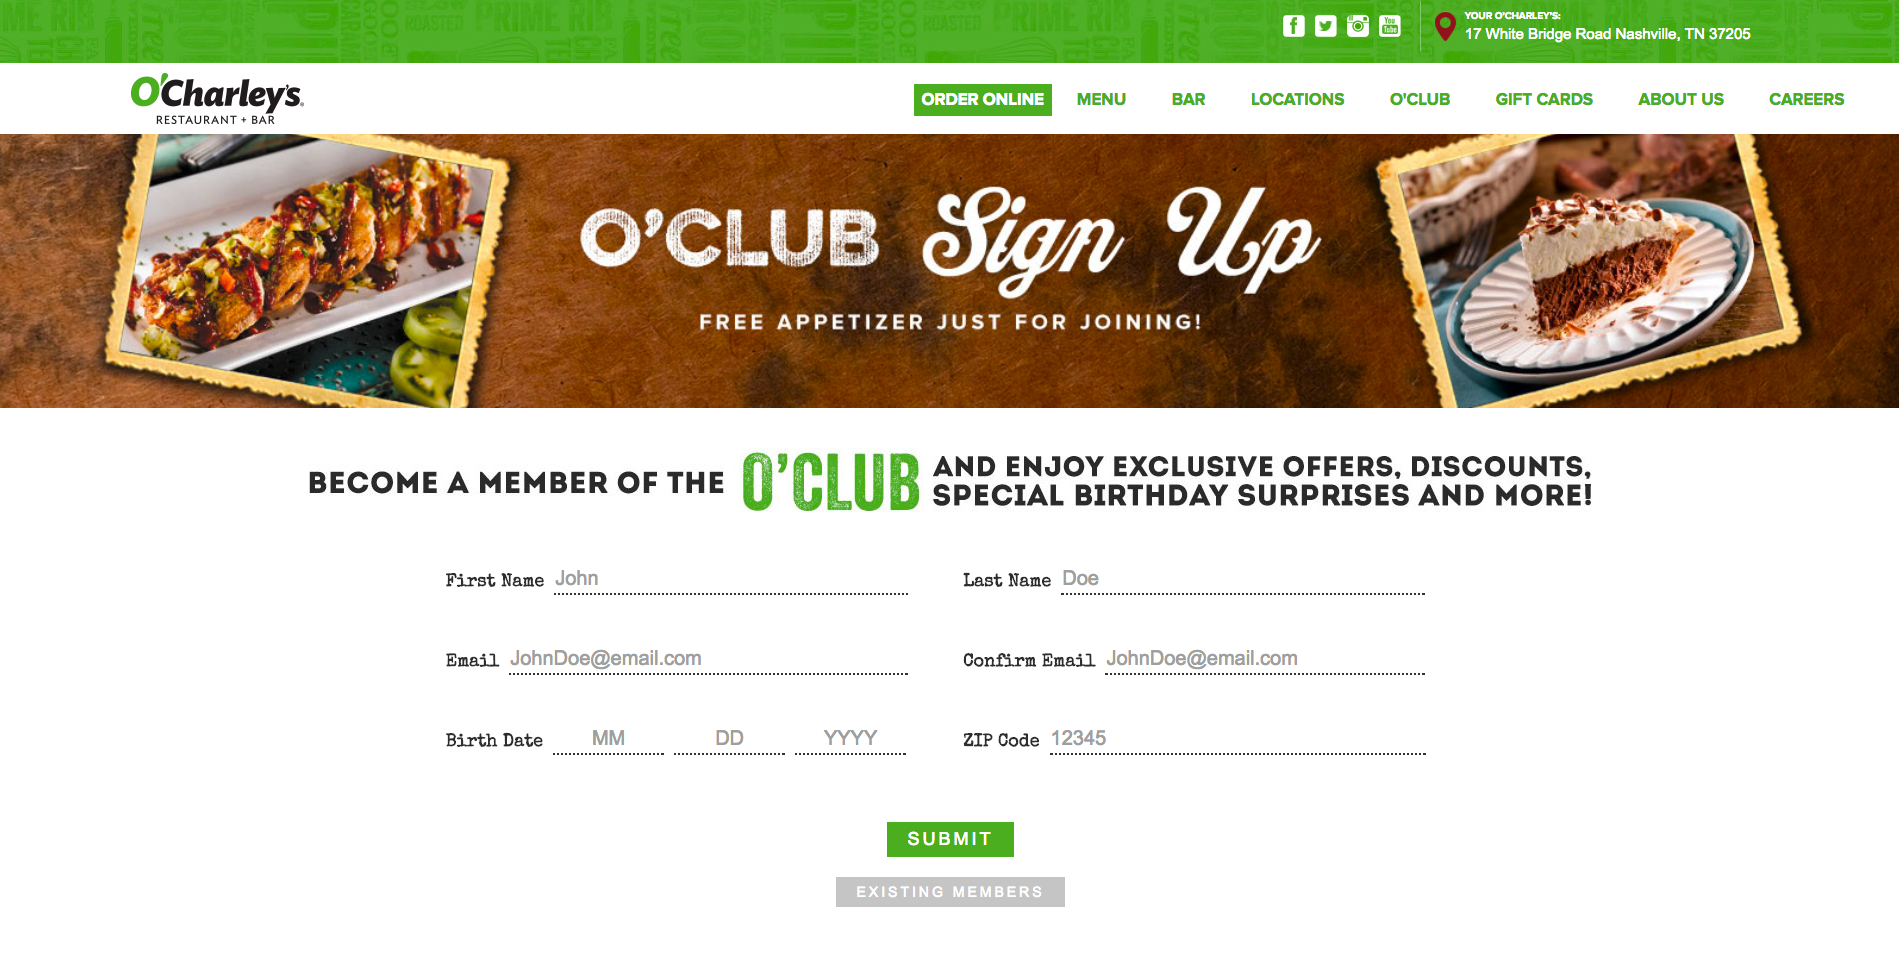 O'Charley's email signup form